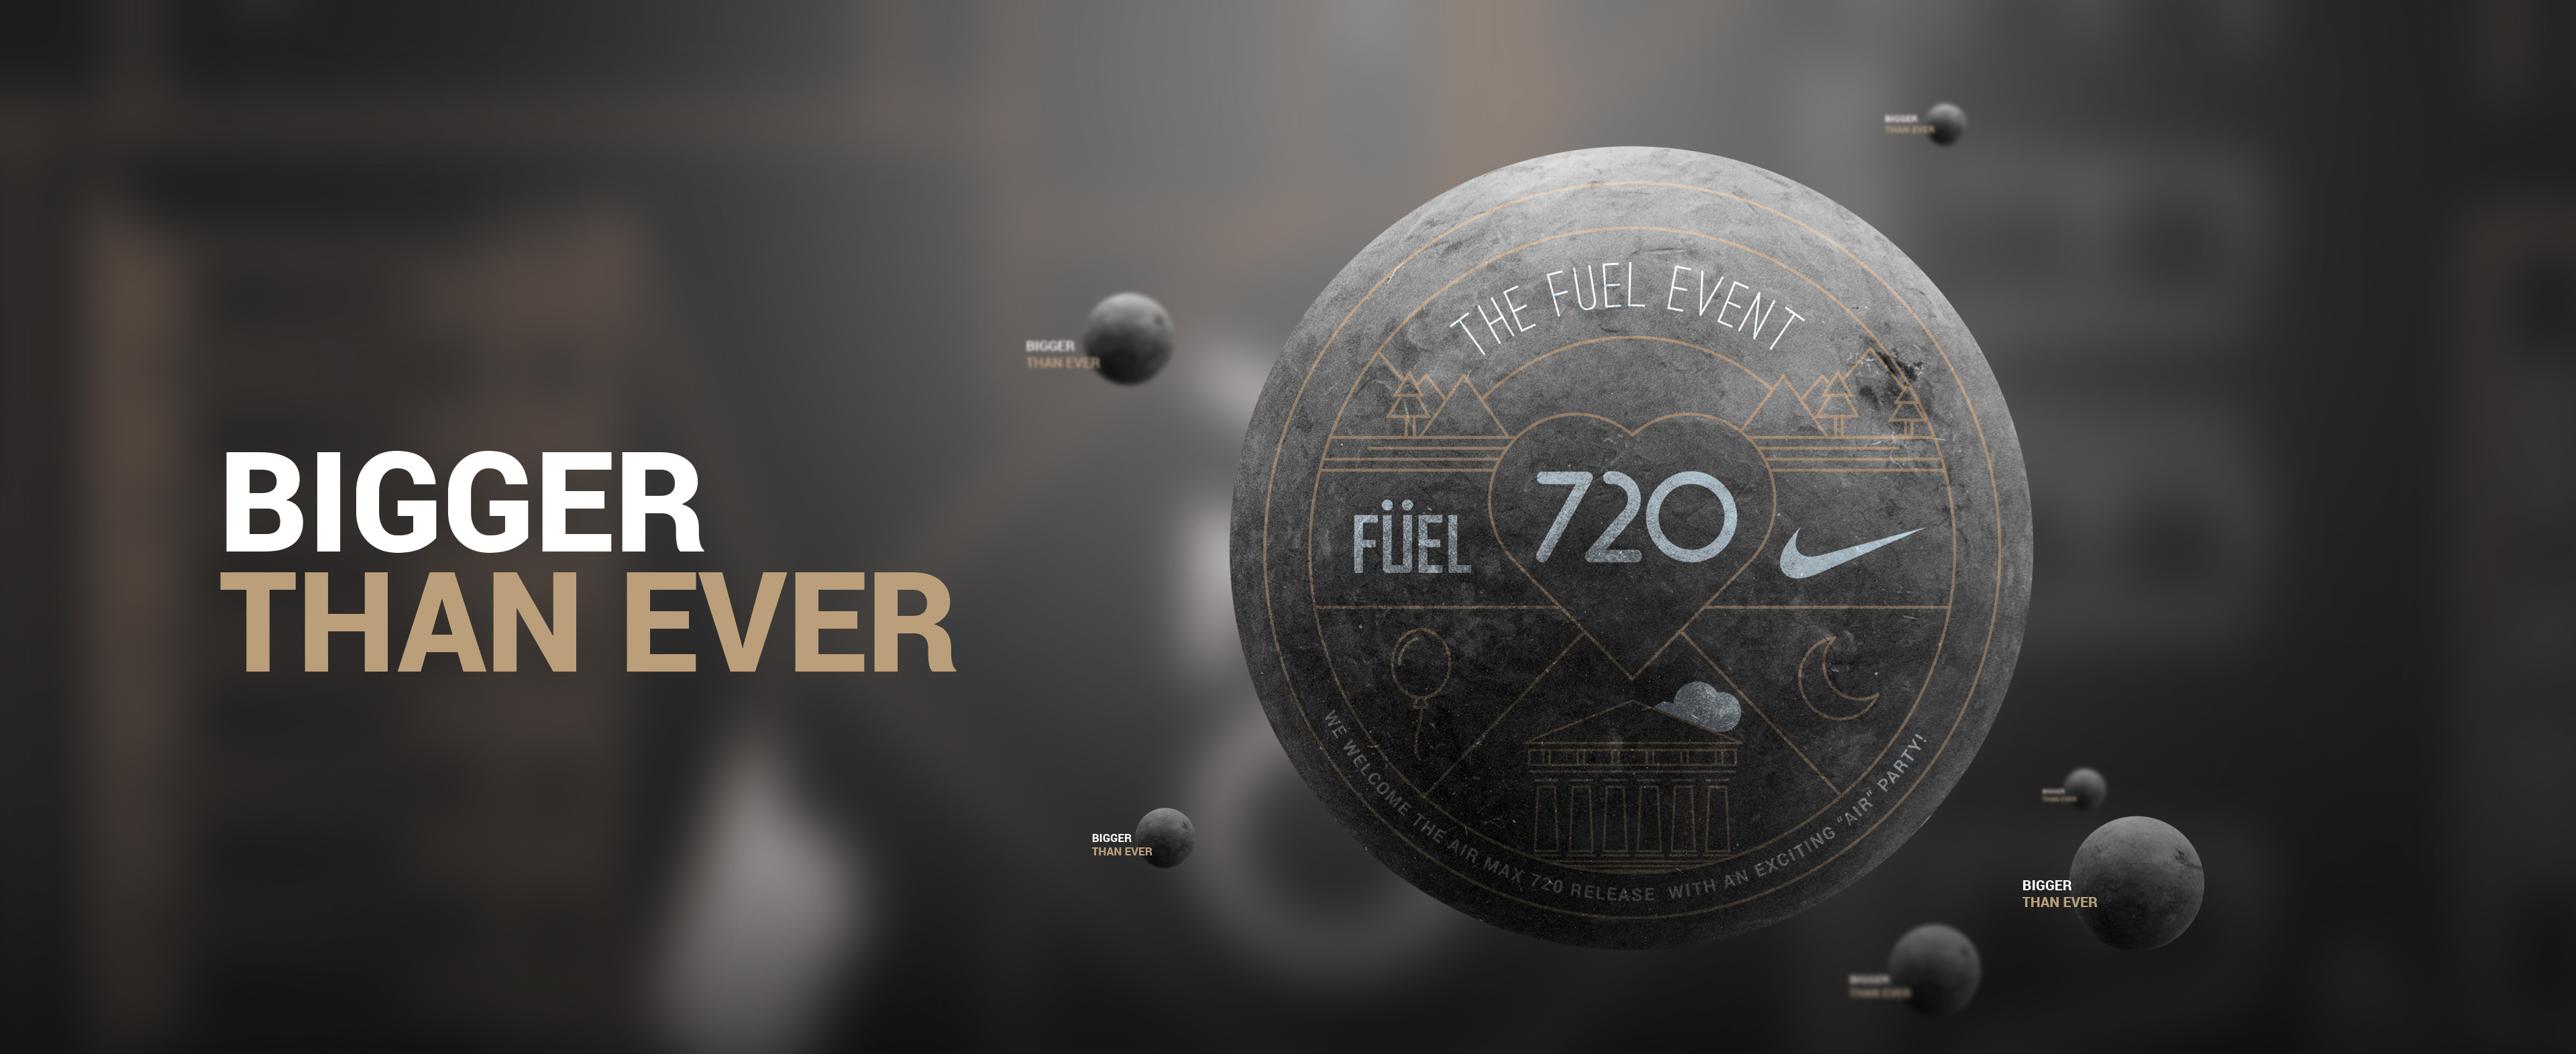 Fuel 720/AIR event